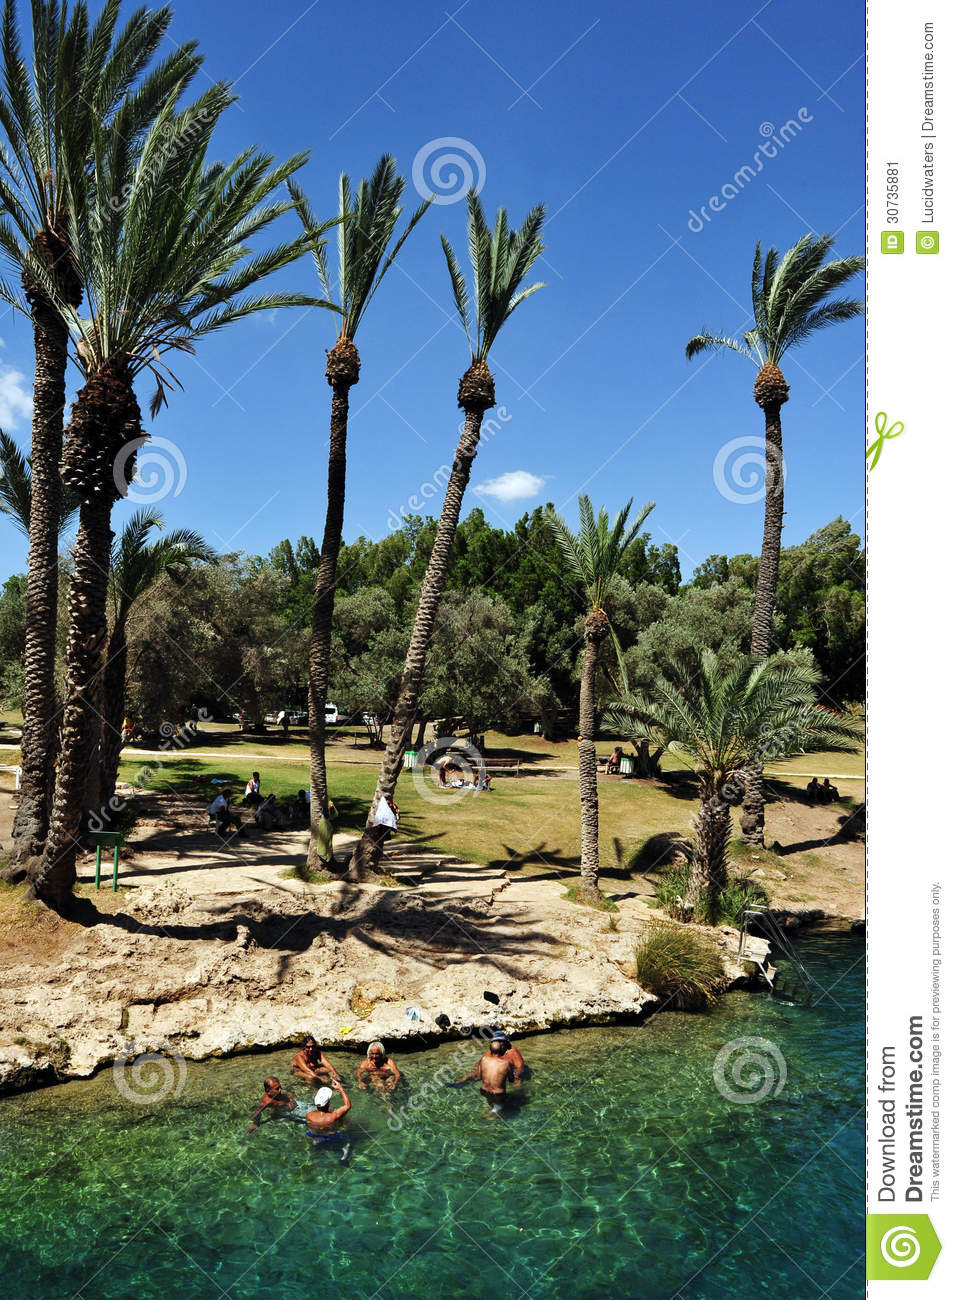 Beit Shean Israel  City pictures : BEIT SHEAN, ISRAEL MAY 17:Visitors at Gan Hashlosha on May 17 2009 ...